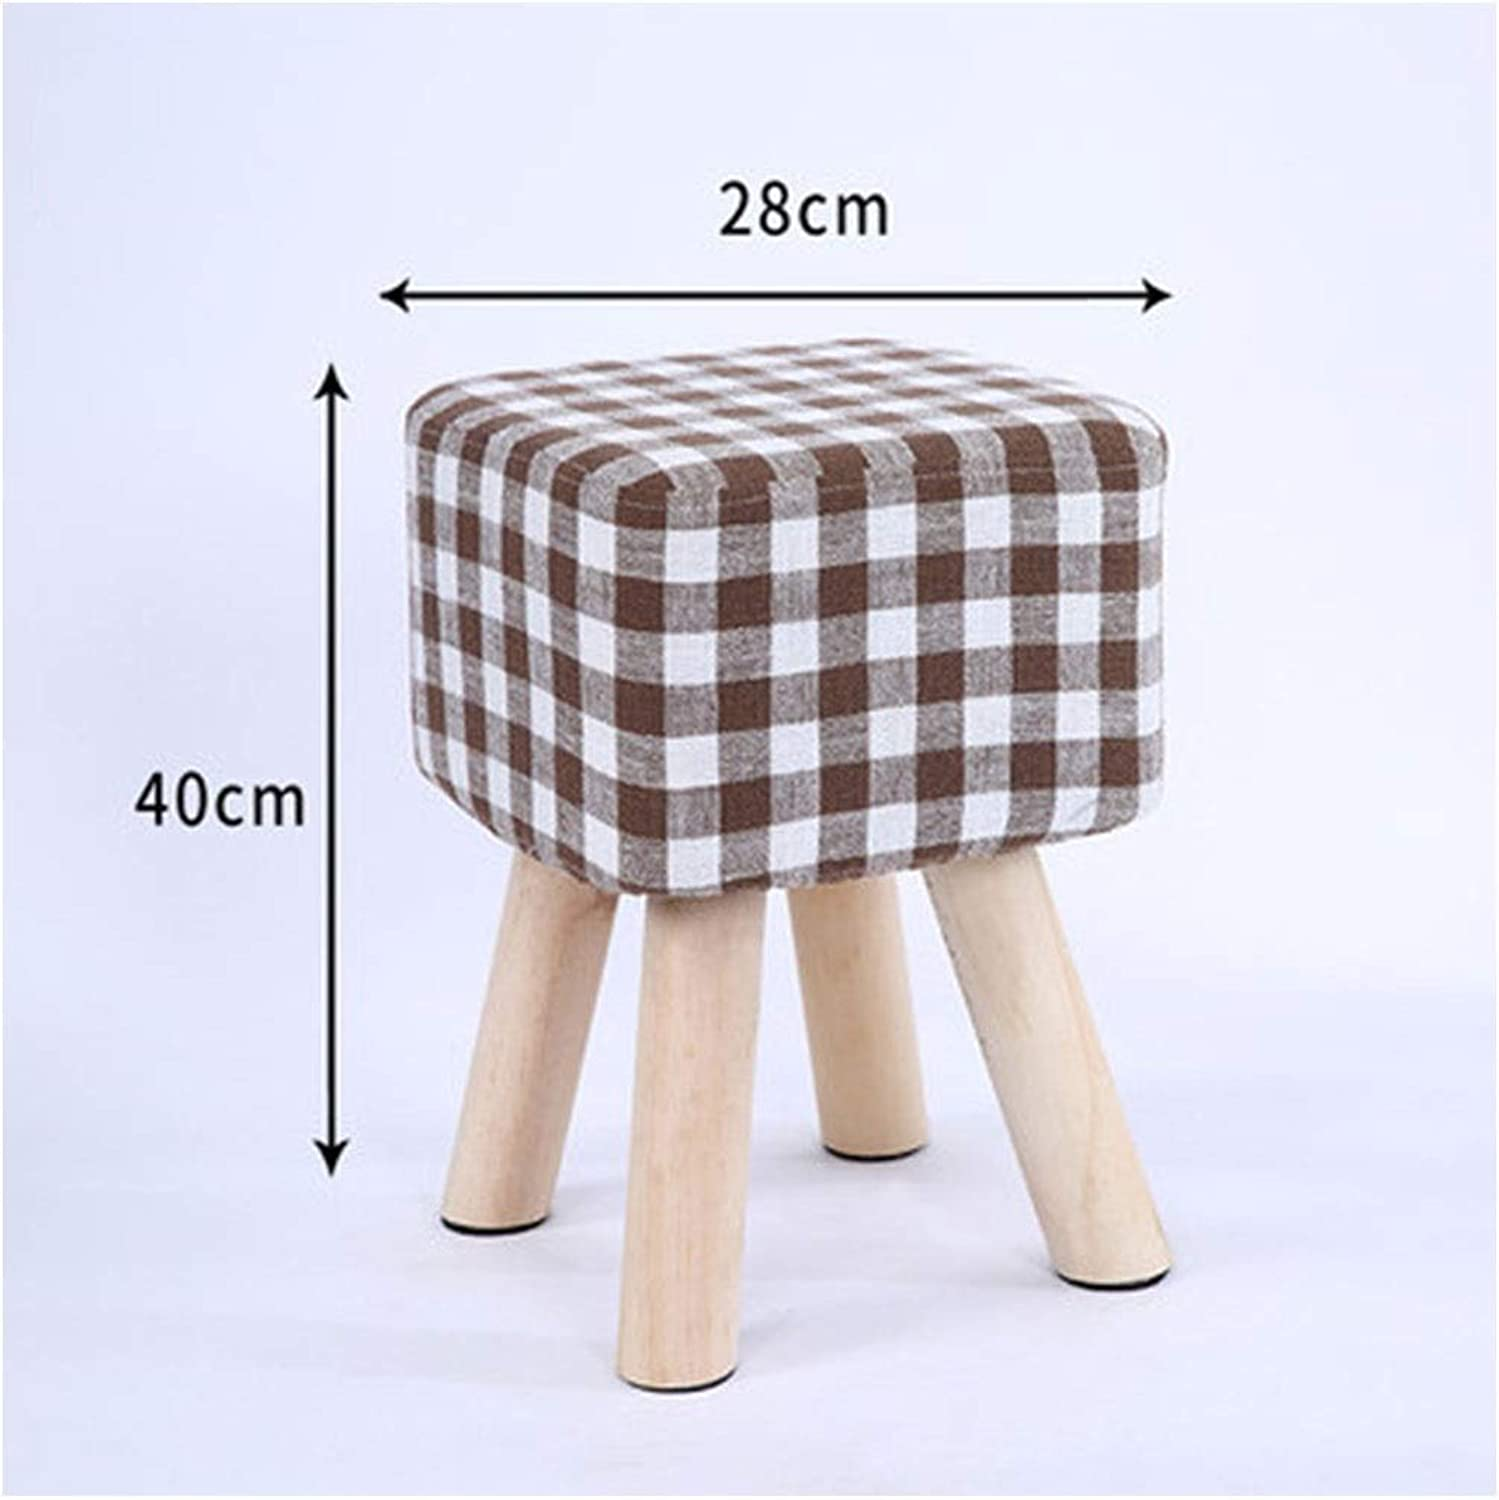 B.YDCM Wooden Bench- Stool Fashion Creative Makeup Stool Change shoes Bench Simple Bench Home Low Stool Bench Adult Stool - Wood Bench (color   D, Size   Square)